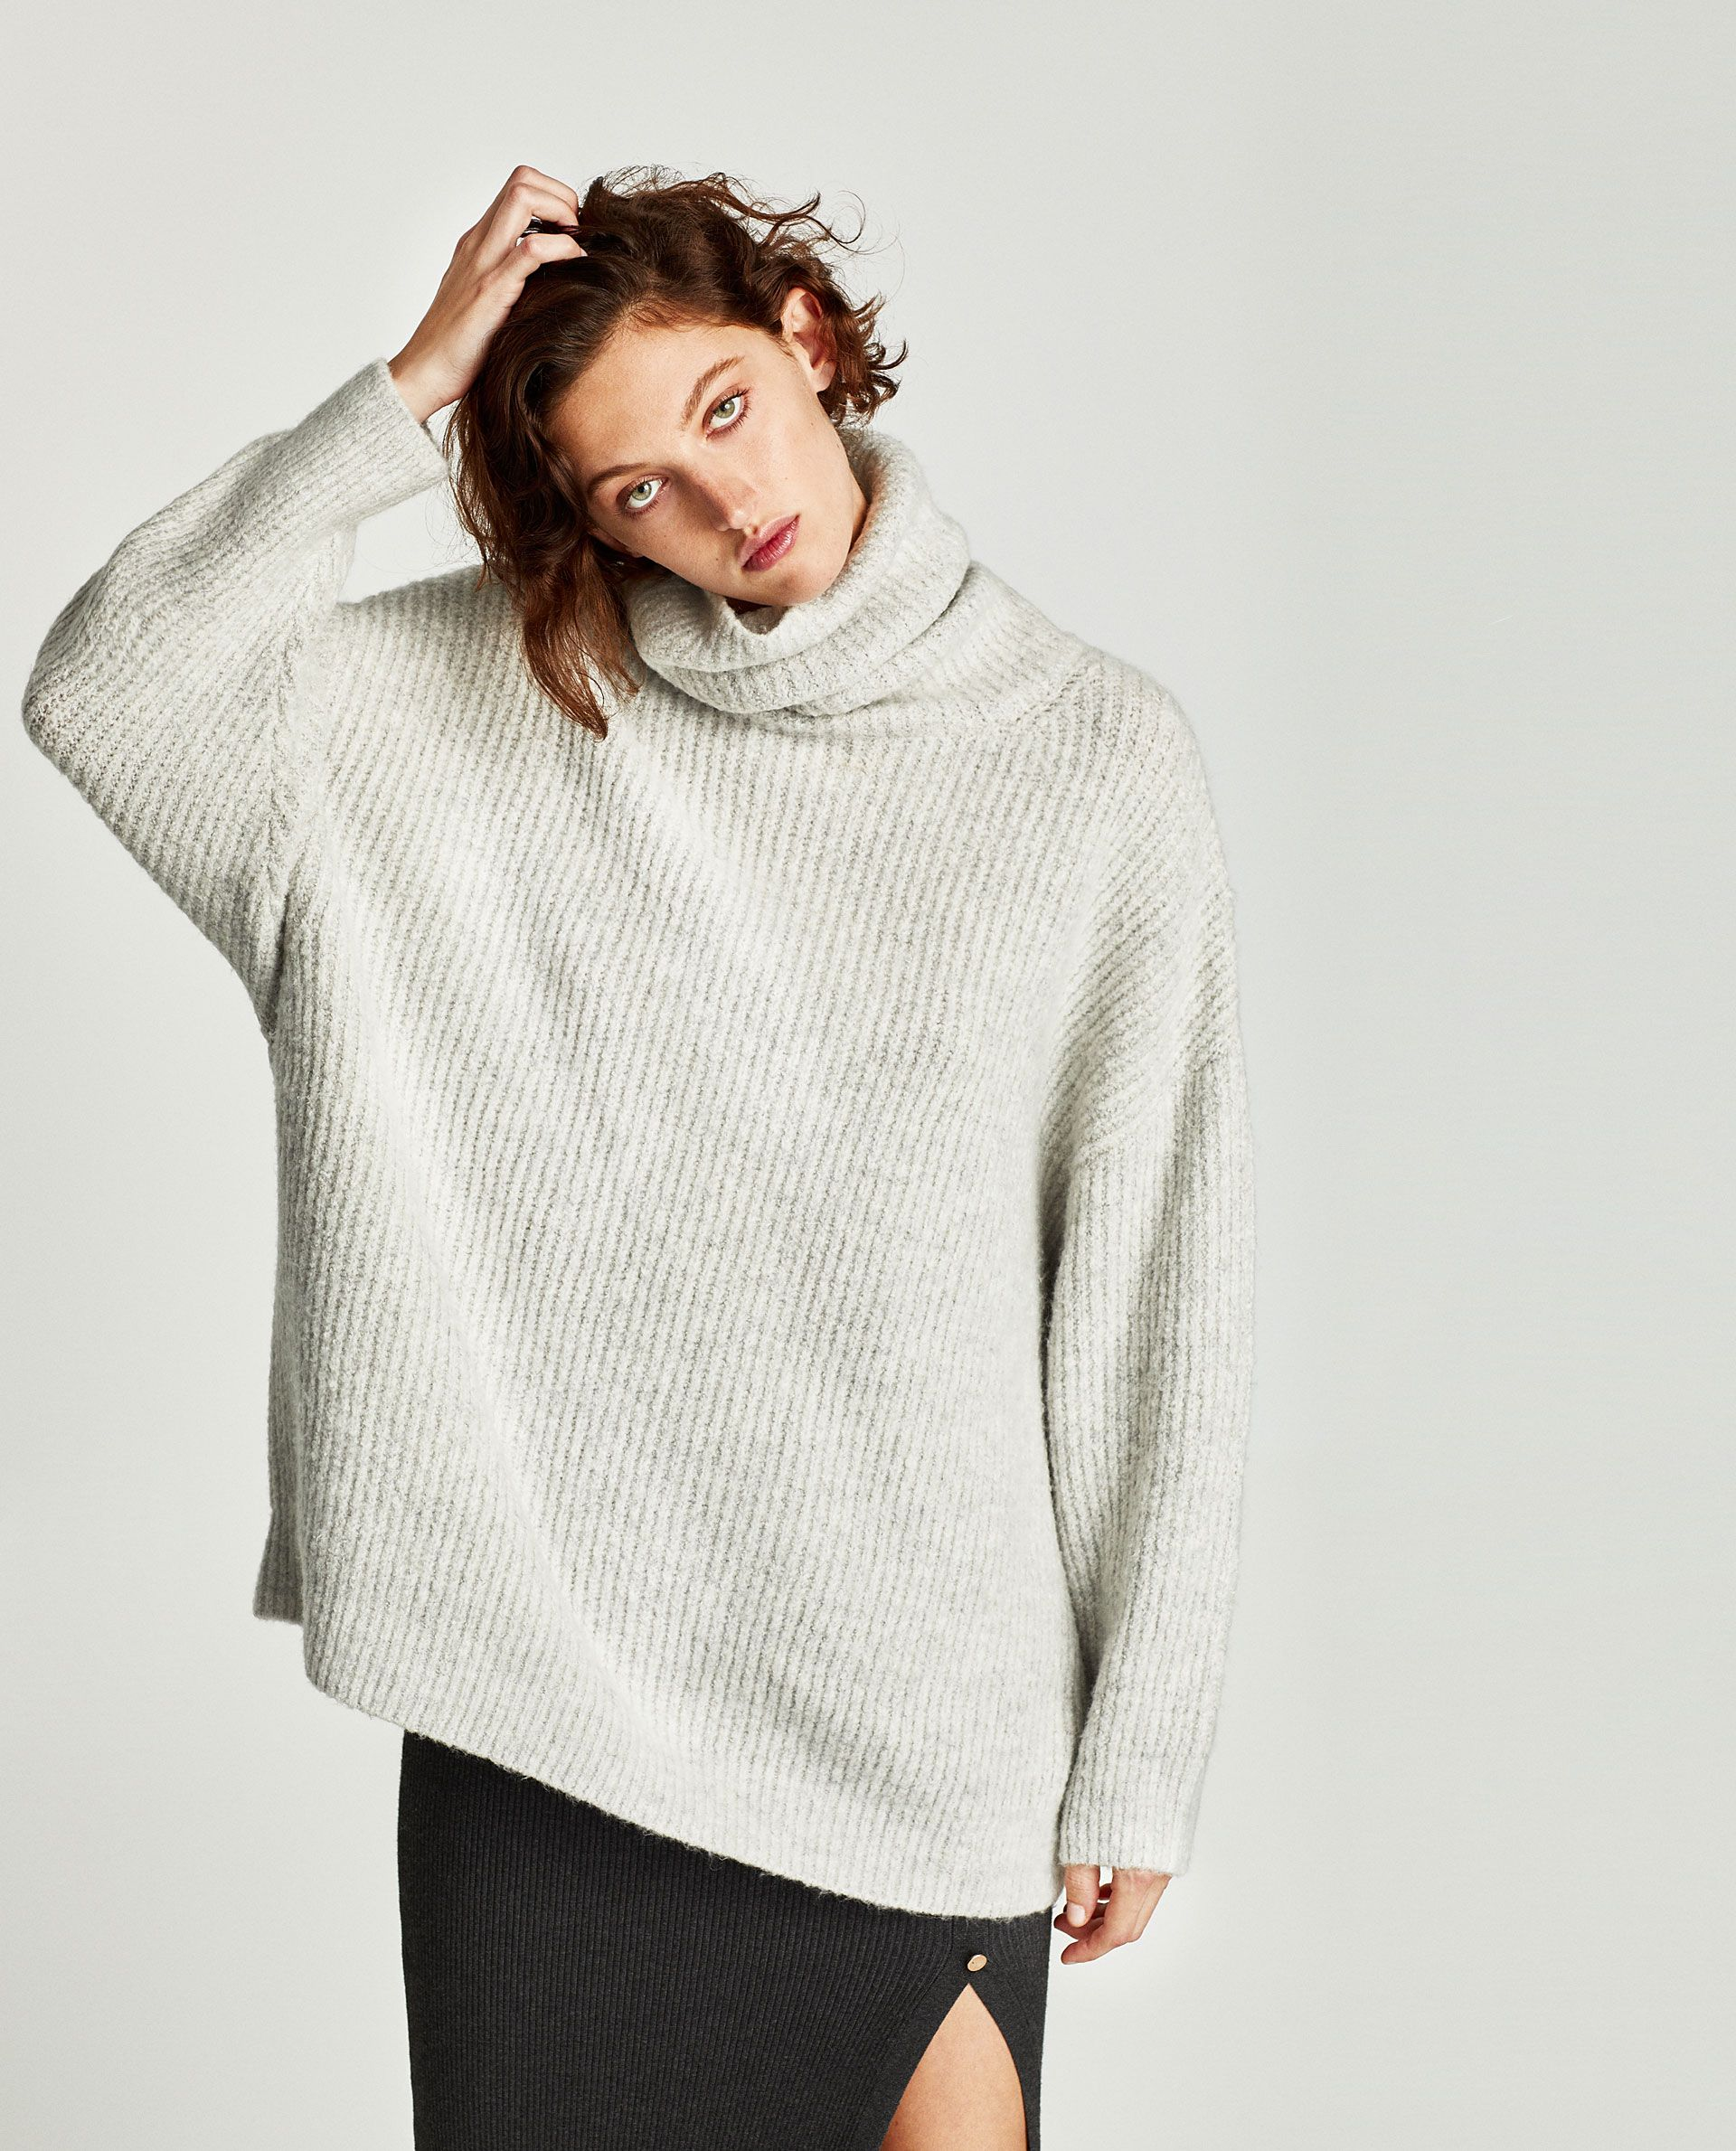 5c772285 Zara Oversized Roll Neck Sweater in Mid-Grey | $49.90 | Girls Just ...